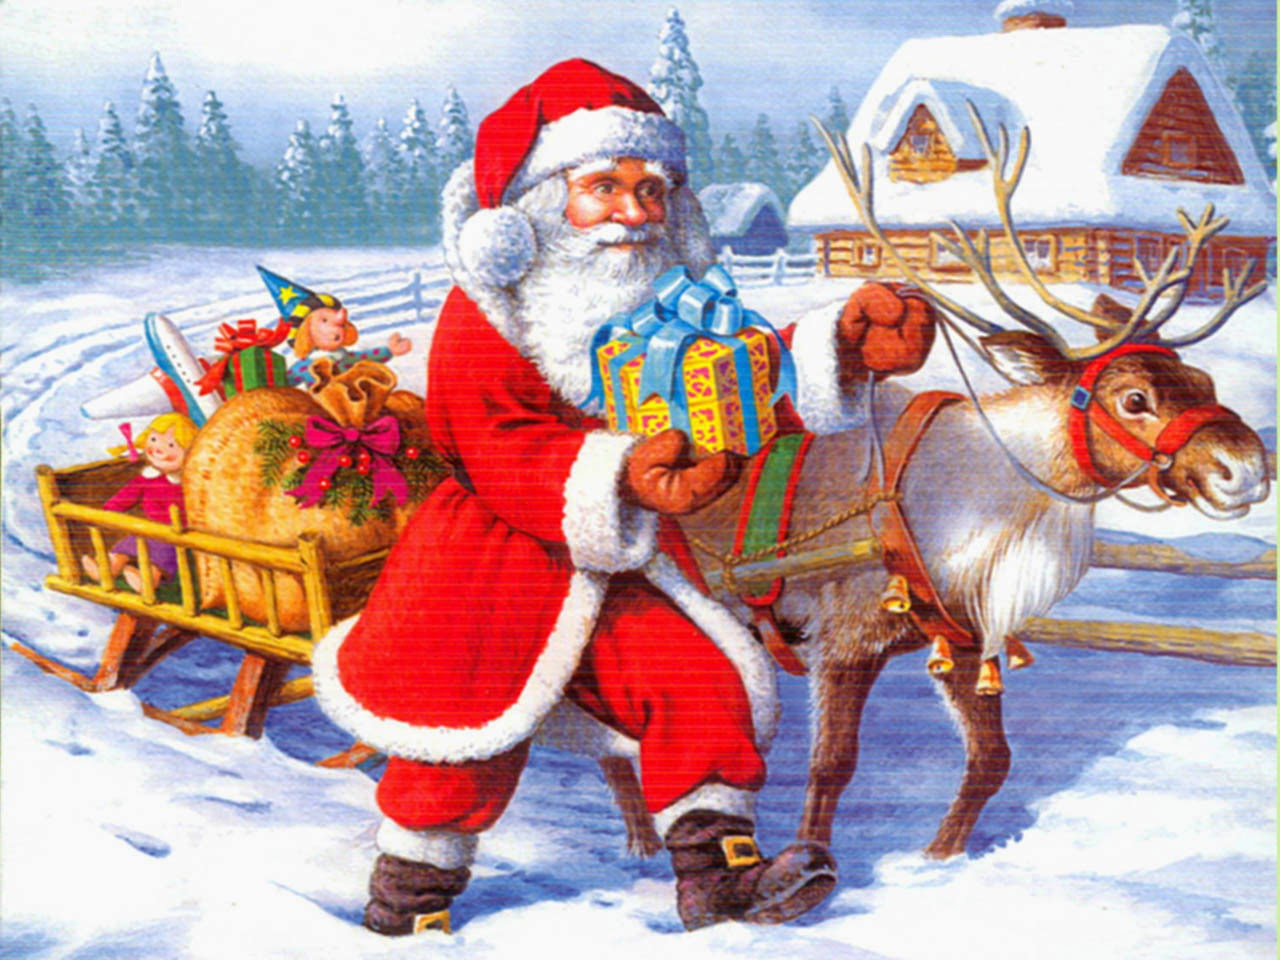 santa claus with reindeer and gift bag image - Santa Claus With Kids